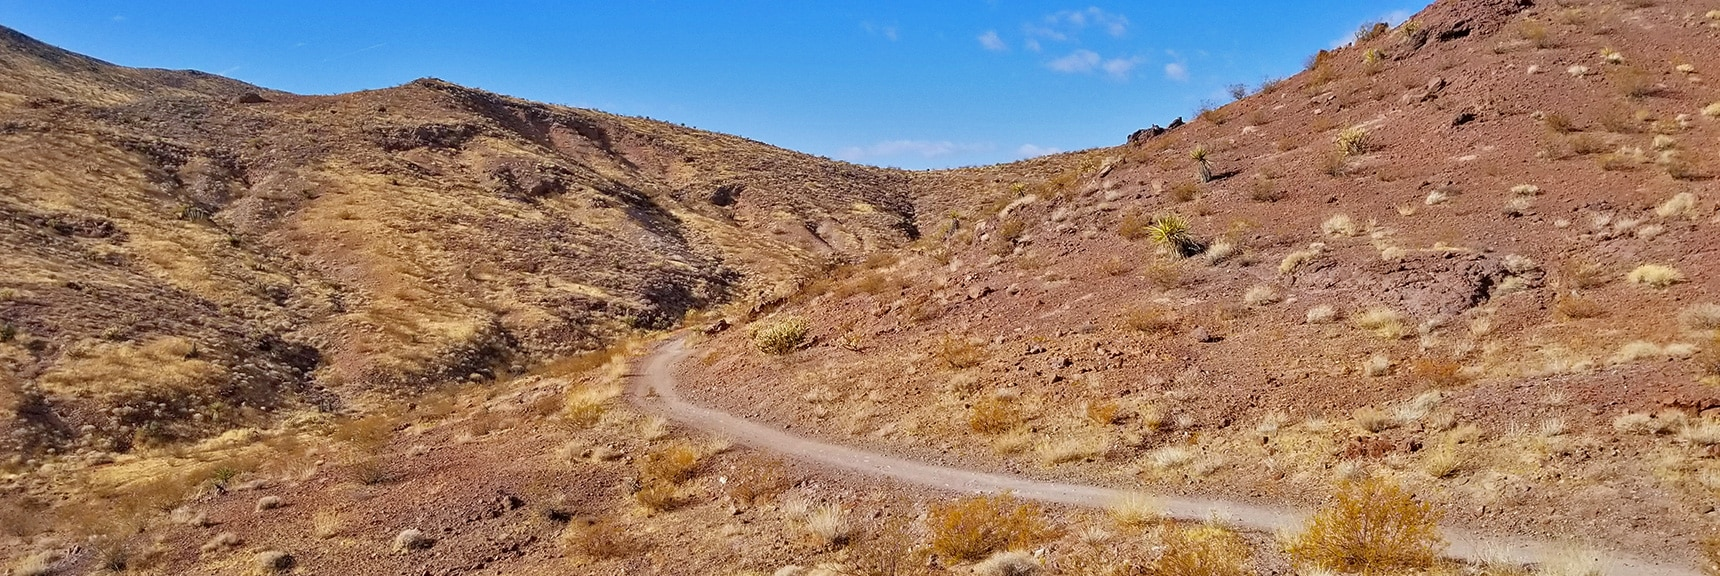 Rounding the Canyon Toward Anthem Area   McCullough Hills Trail in Sloan Canyon National Conservation Area, Nevada